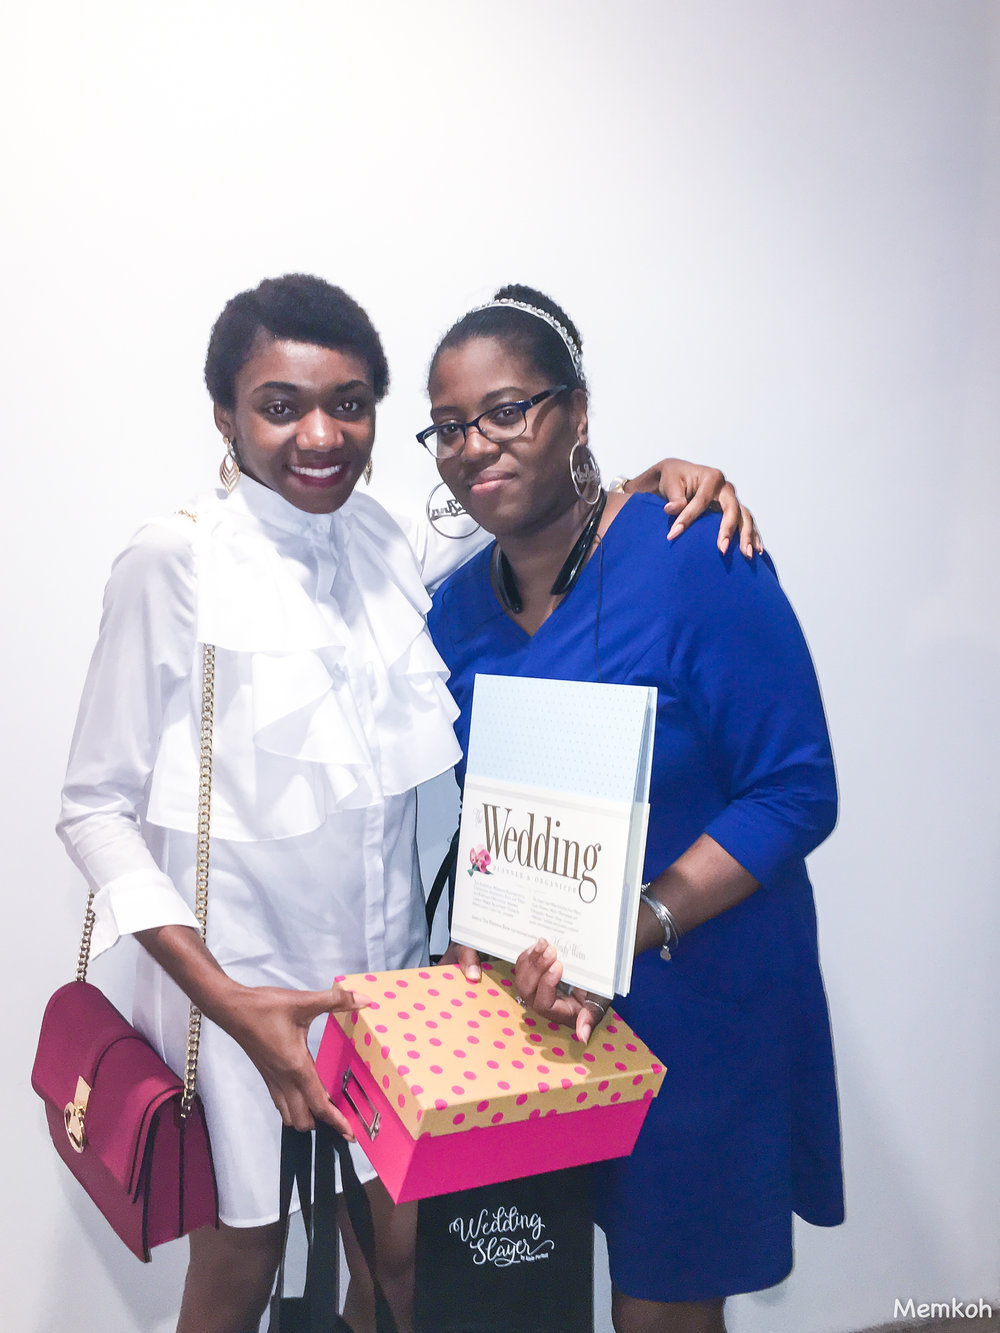 Bridal Stylist, Memkoh with a Memkoh Bridal Box recipient